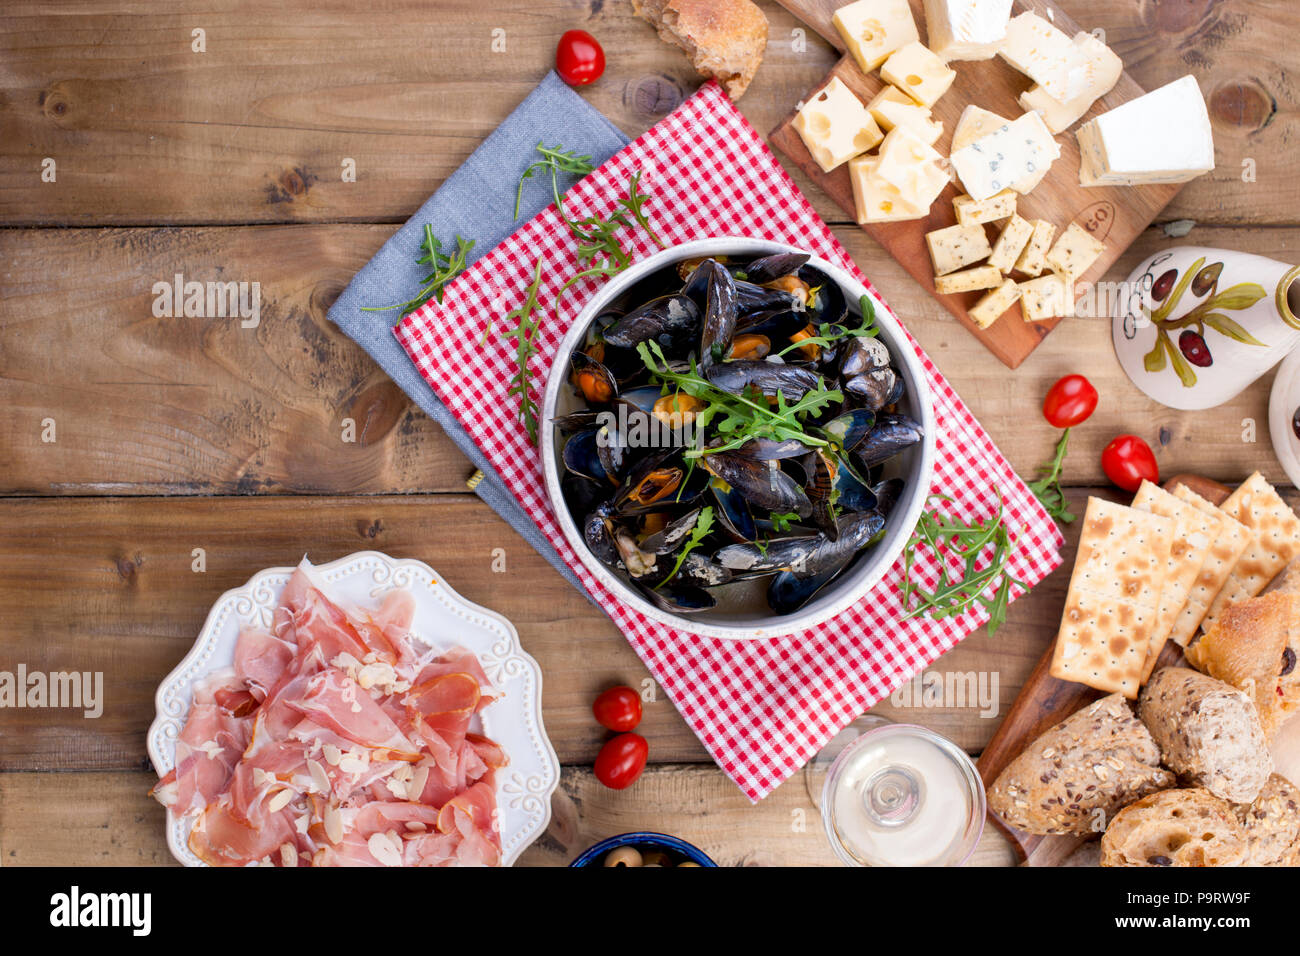 Muesli in a white ceramic bowl, on a red napkin. Cheese on a wooden board and a glass of white wine, olives, bread. Meat on a plate. On a wooden background. Free space for text or advertising Stock Photo